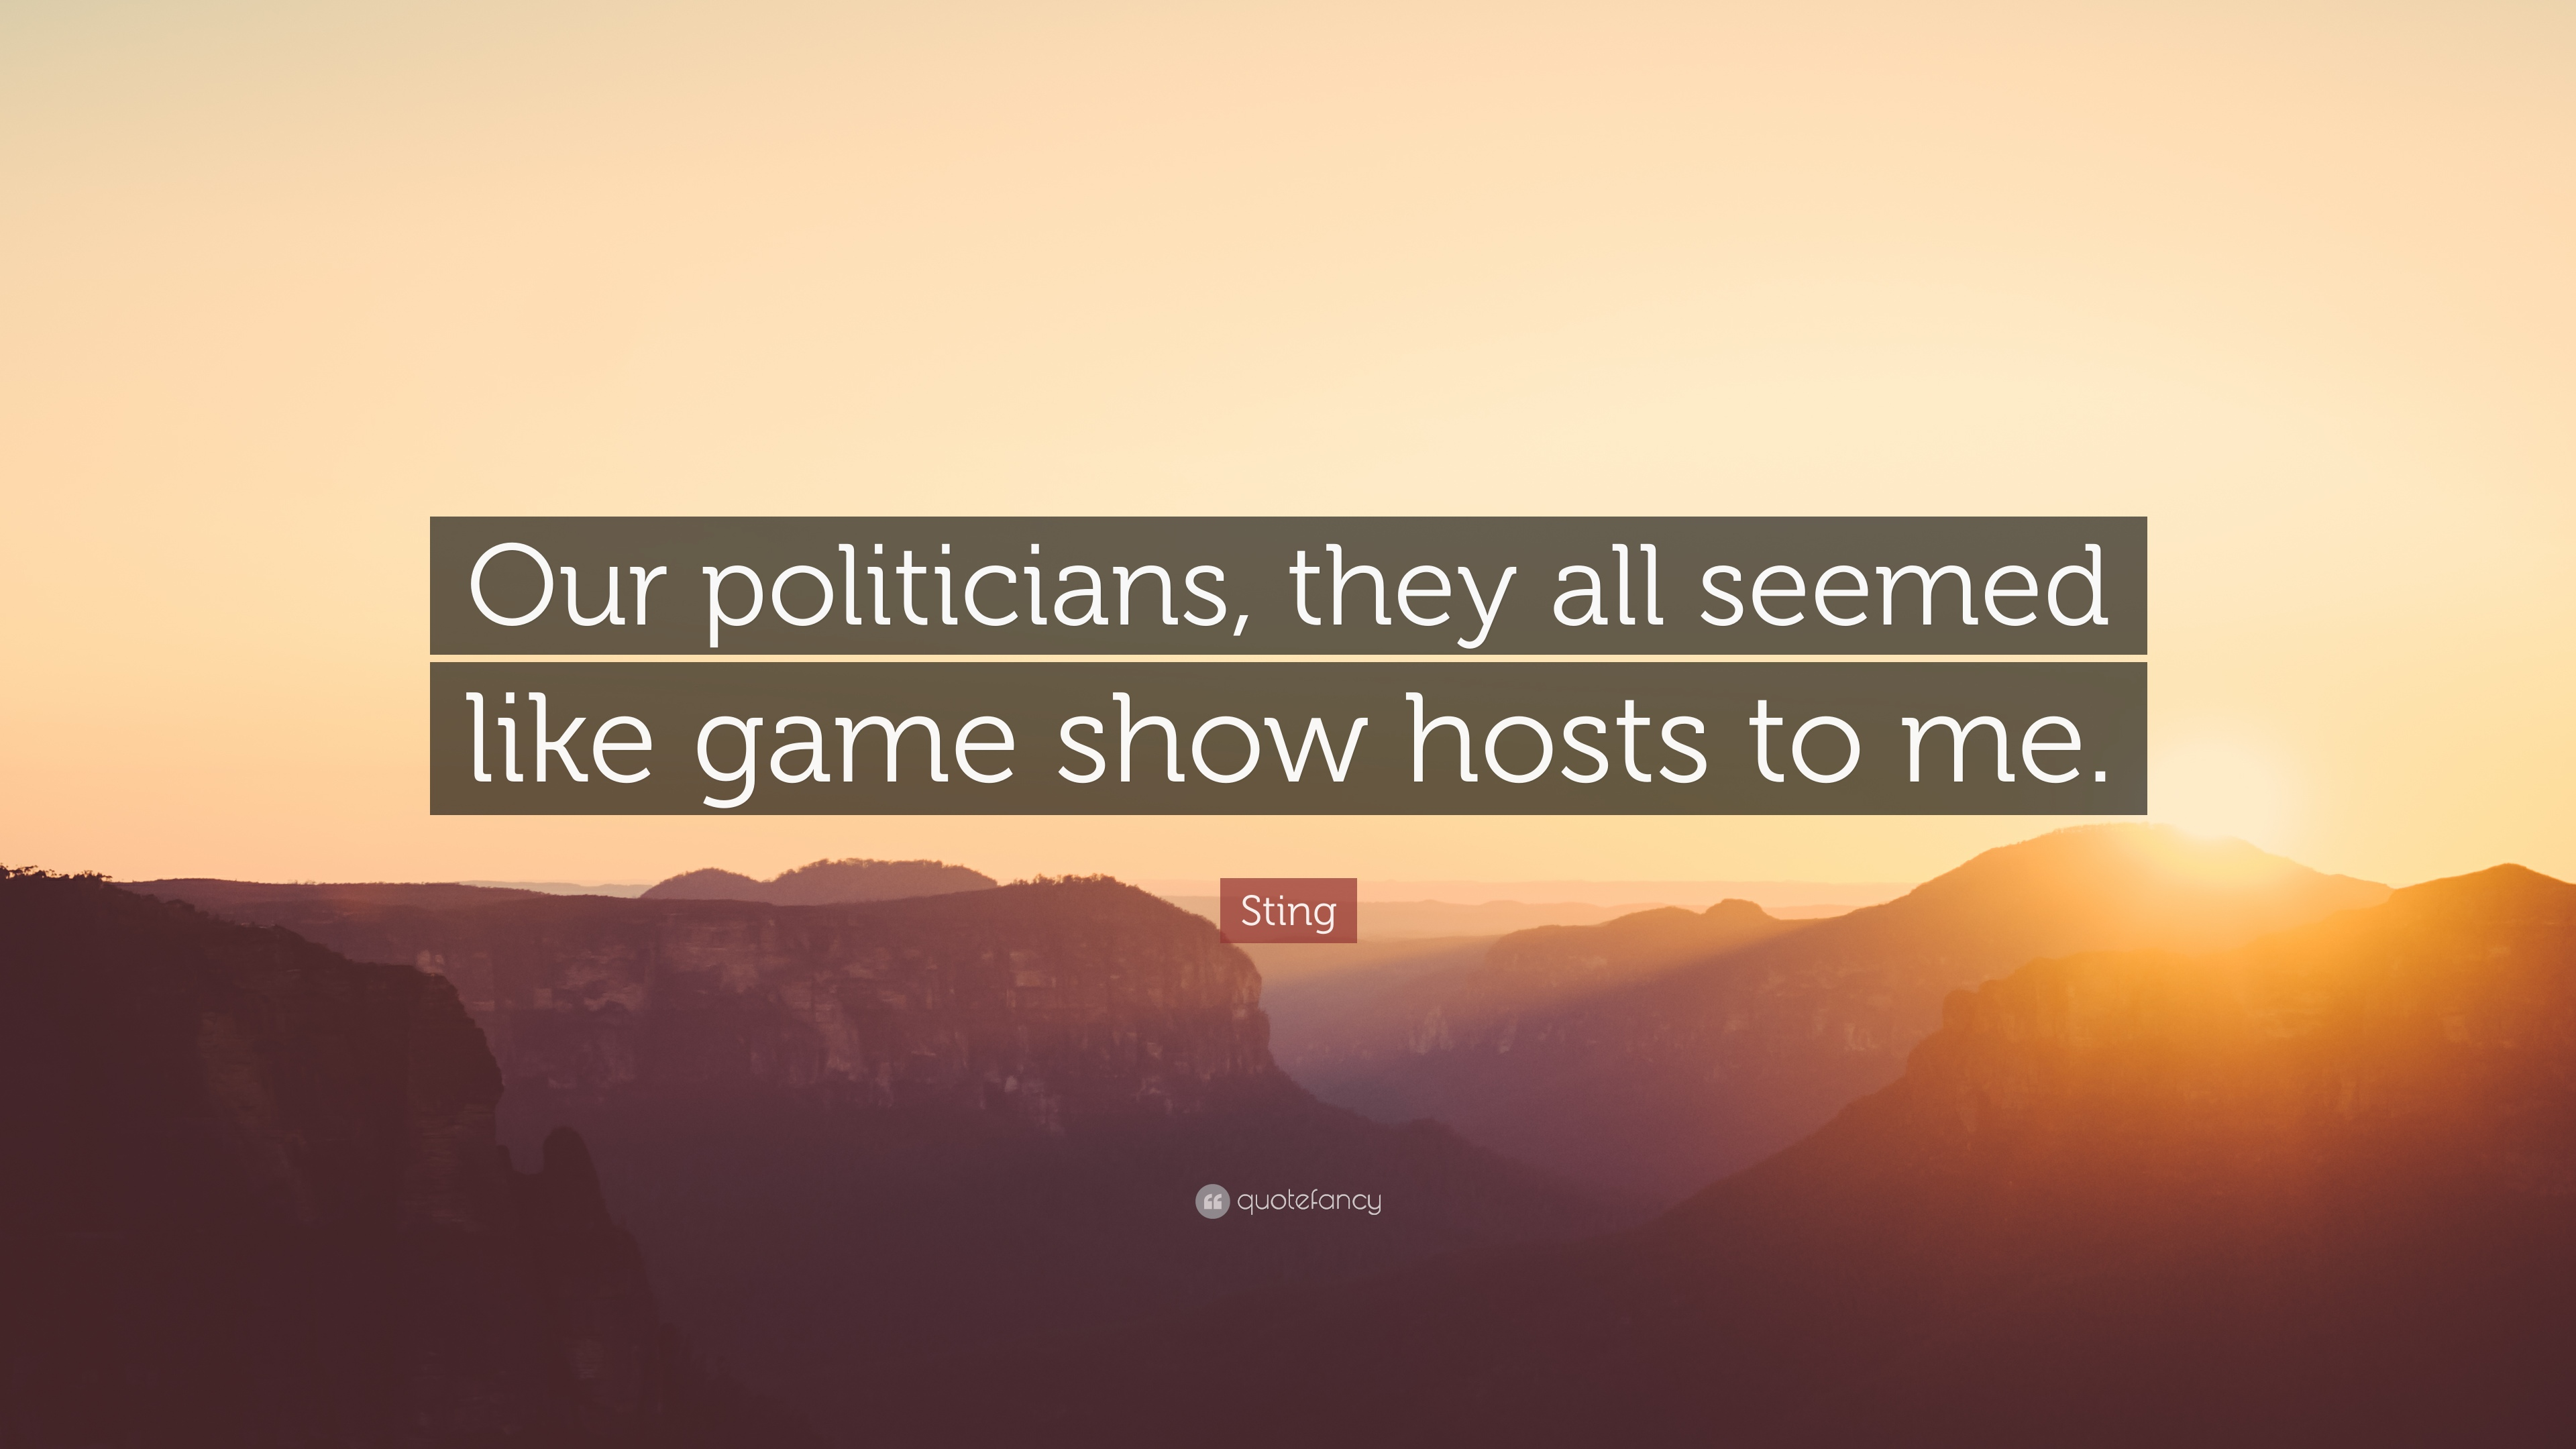 https://quotefancy.com/media/wallpaper/3840x2160/752331-Sting-Quote-Our-politicians-they-all-seemed-like-game-show-hosts.jpg